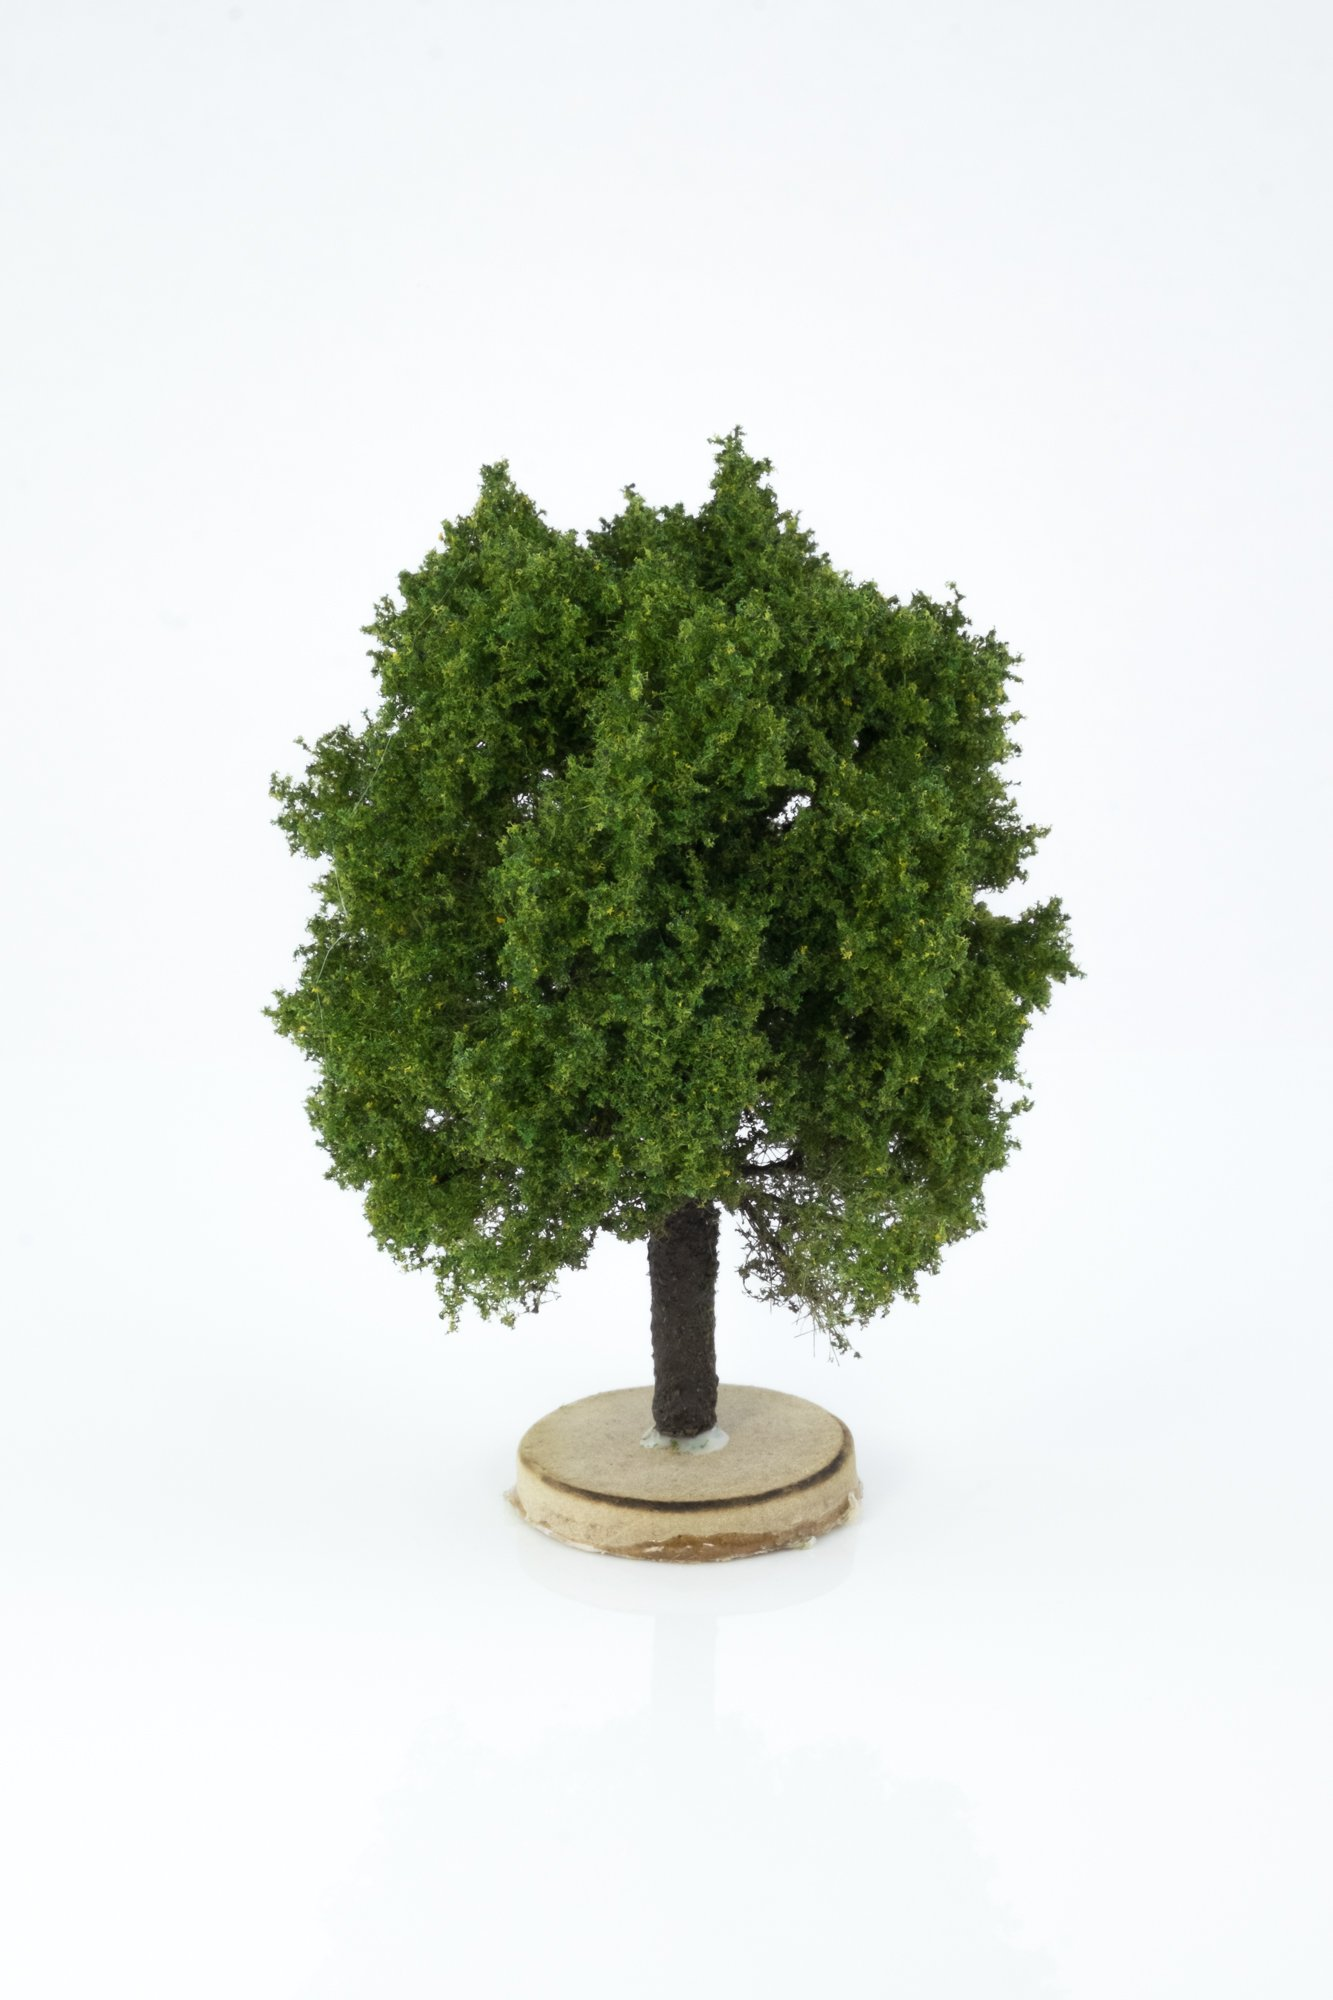 Hand-made, green, oak tree model. Size between 8 and 12 cm. Made from high quality model supplies by Primo Models.